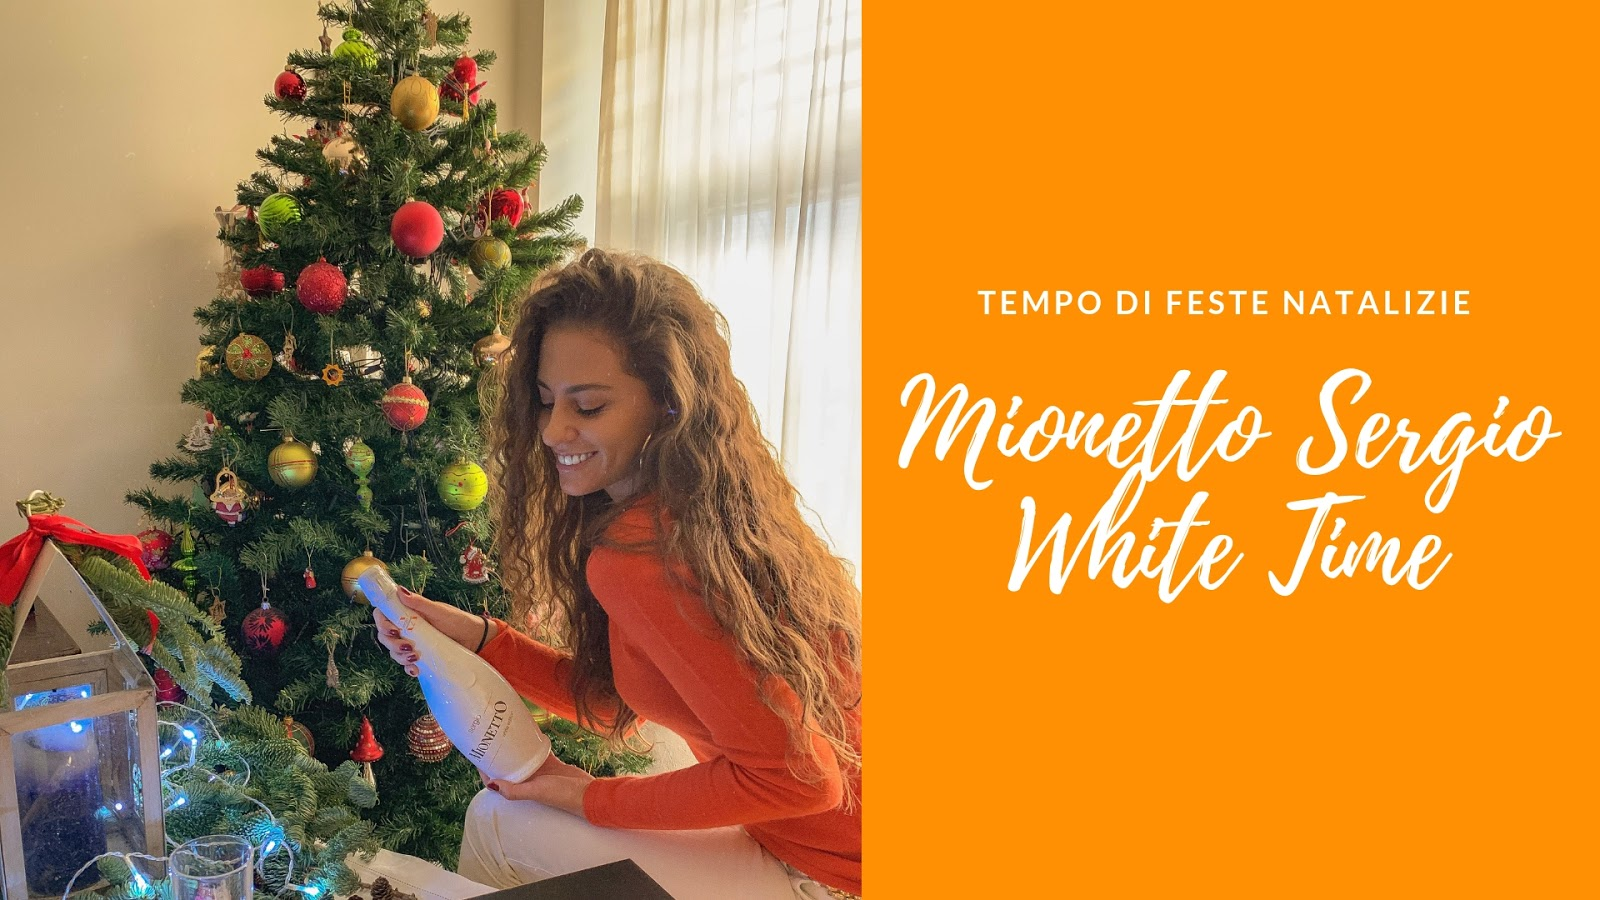 moneto Sergio white time tempo I feste natalizie, Valentina Rago, fashion nee, MIONETTO spumante, MIONETTO Sergio, MIONETTO white time